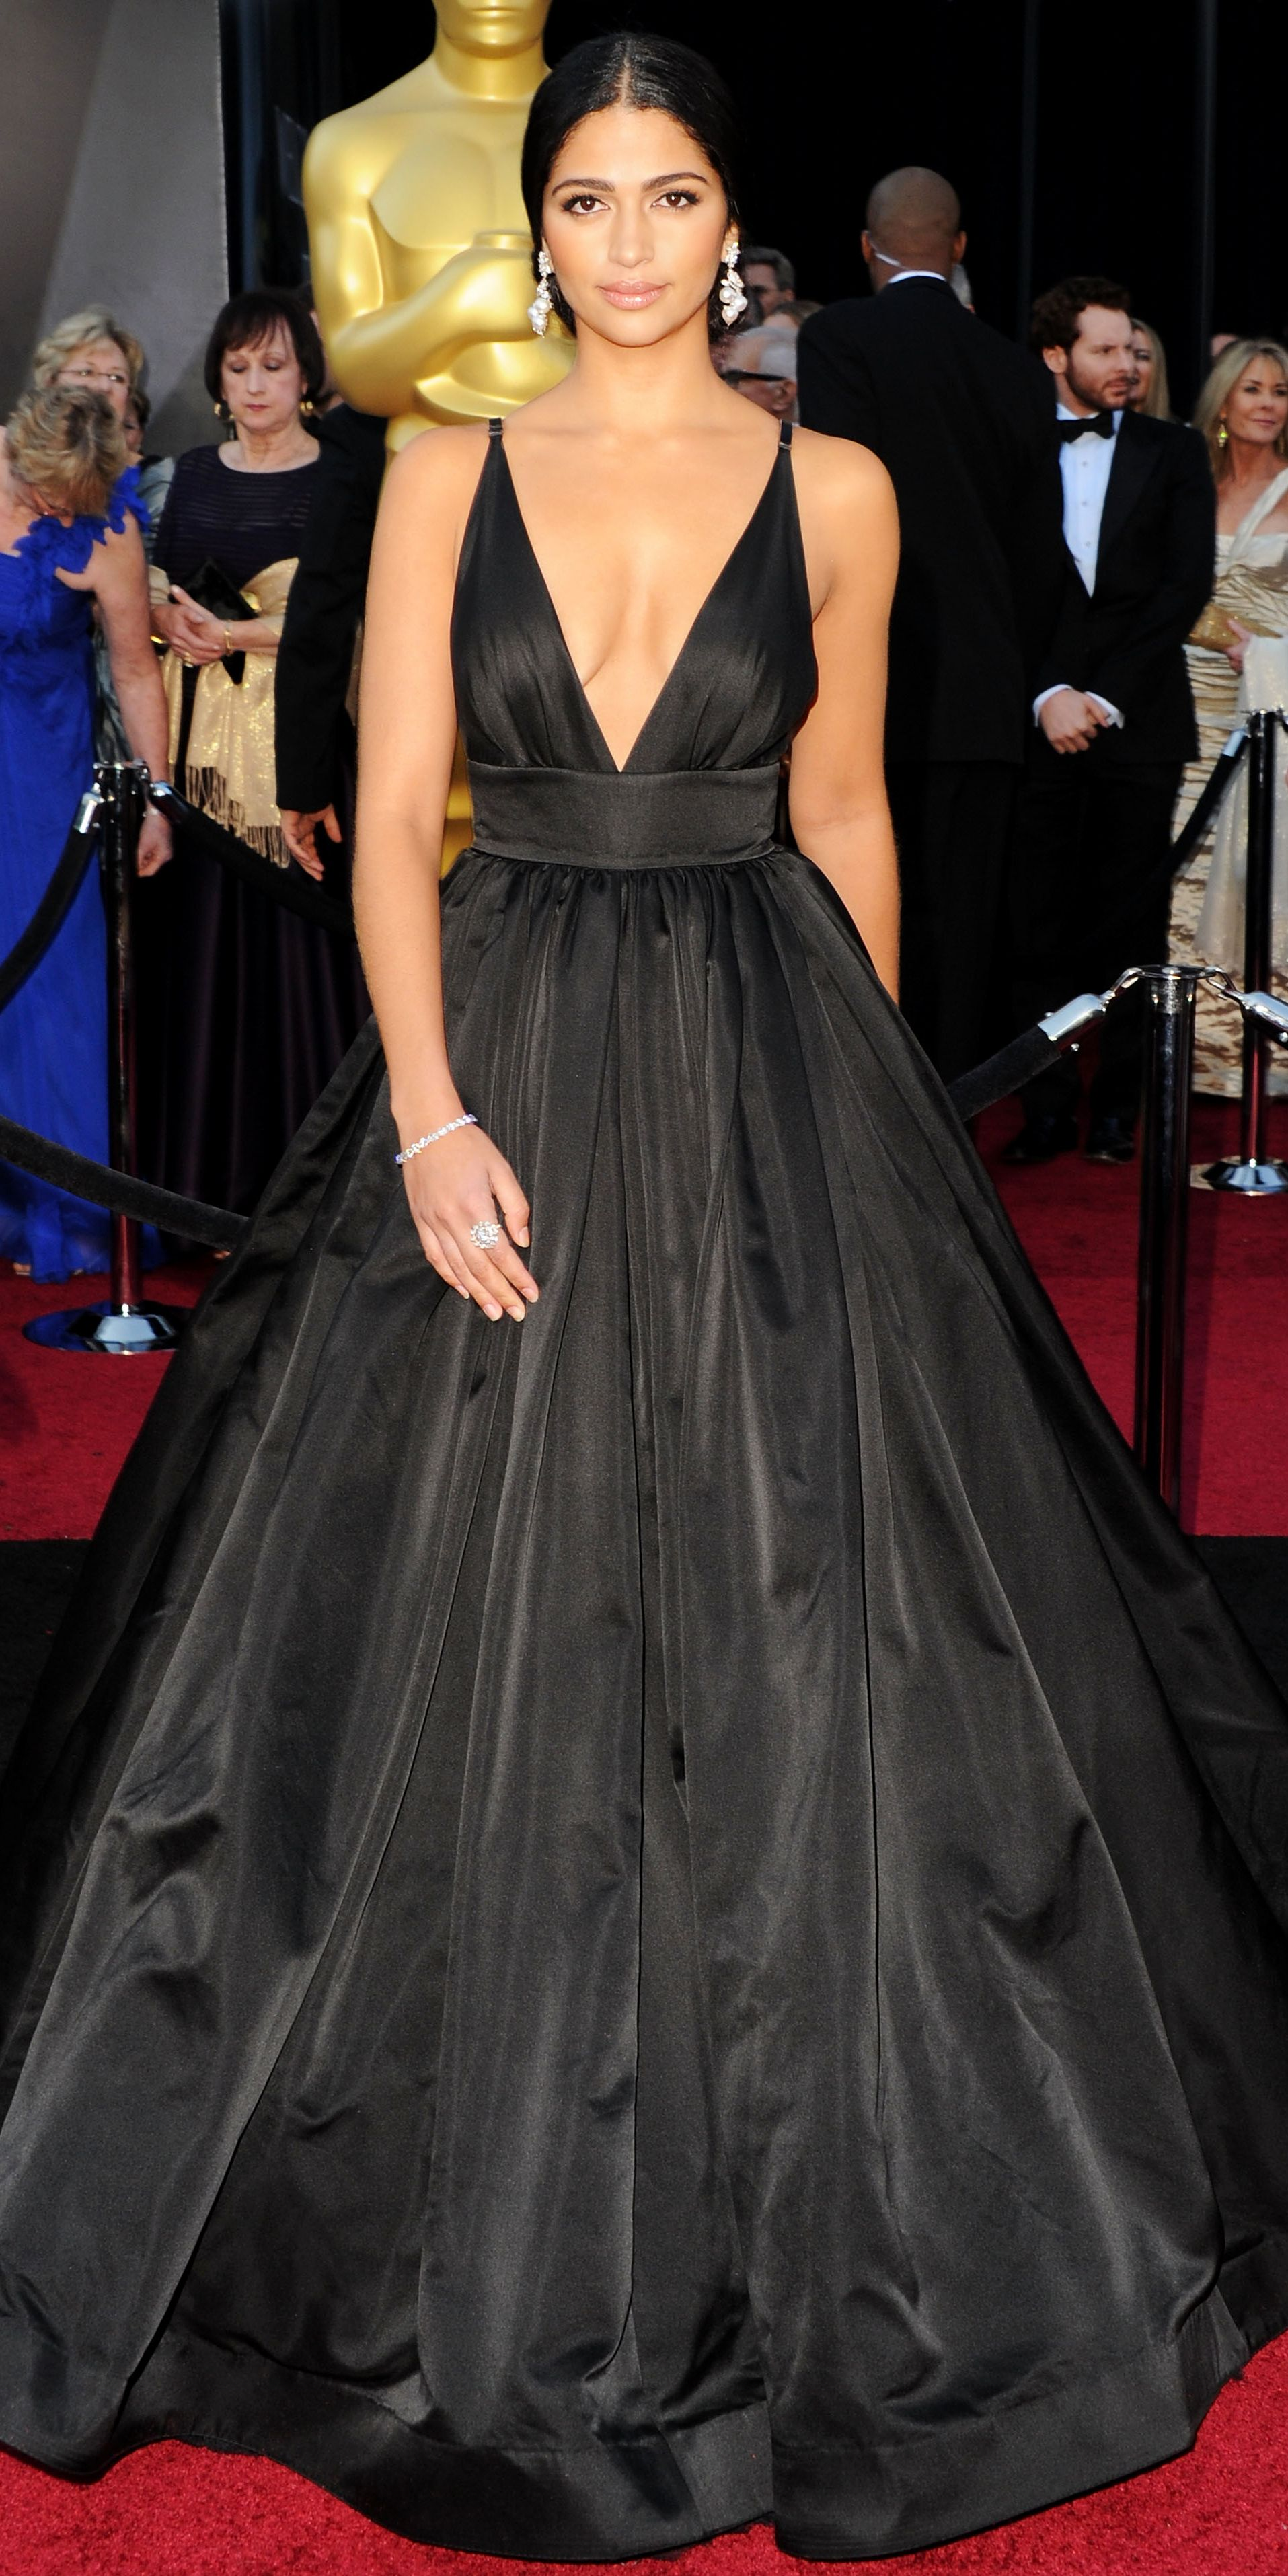 f2840738998 The Best Black Gowns on the Red Carpet Ever - Camila Alves in Kaufmanfranco  from InStyle.com